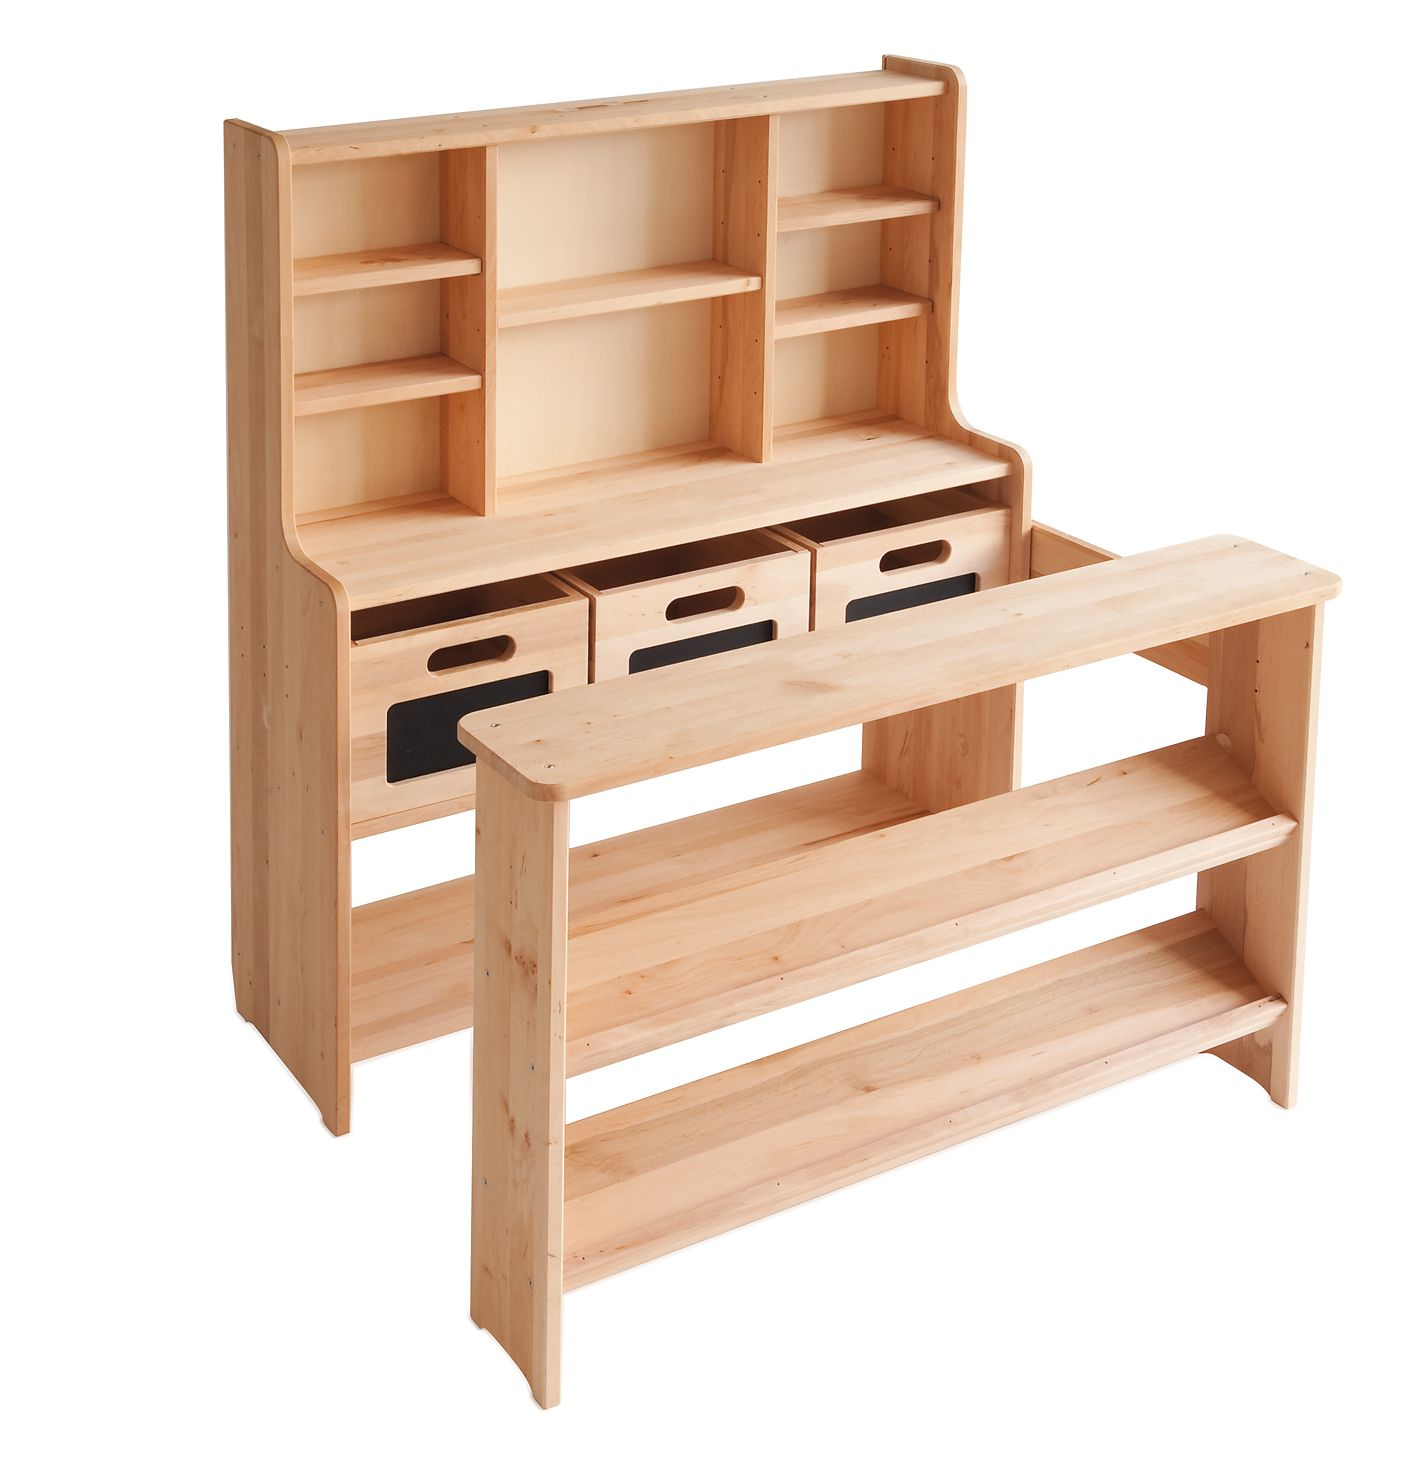 kaufladen holz massiv erle kinderzimmer kaufladen kinder kaufladen und kaufladen holz. Black Bedroom Furniture Sets. Home Design Ideas